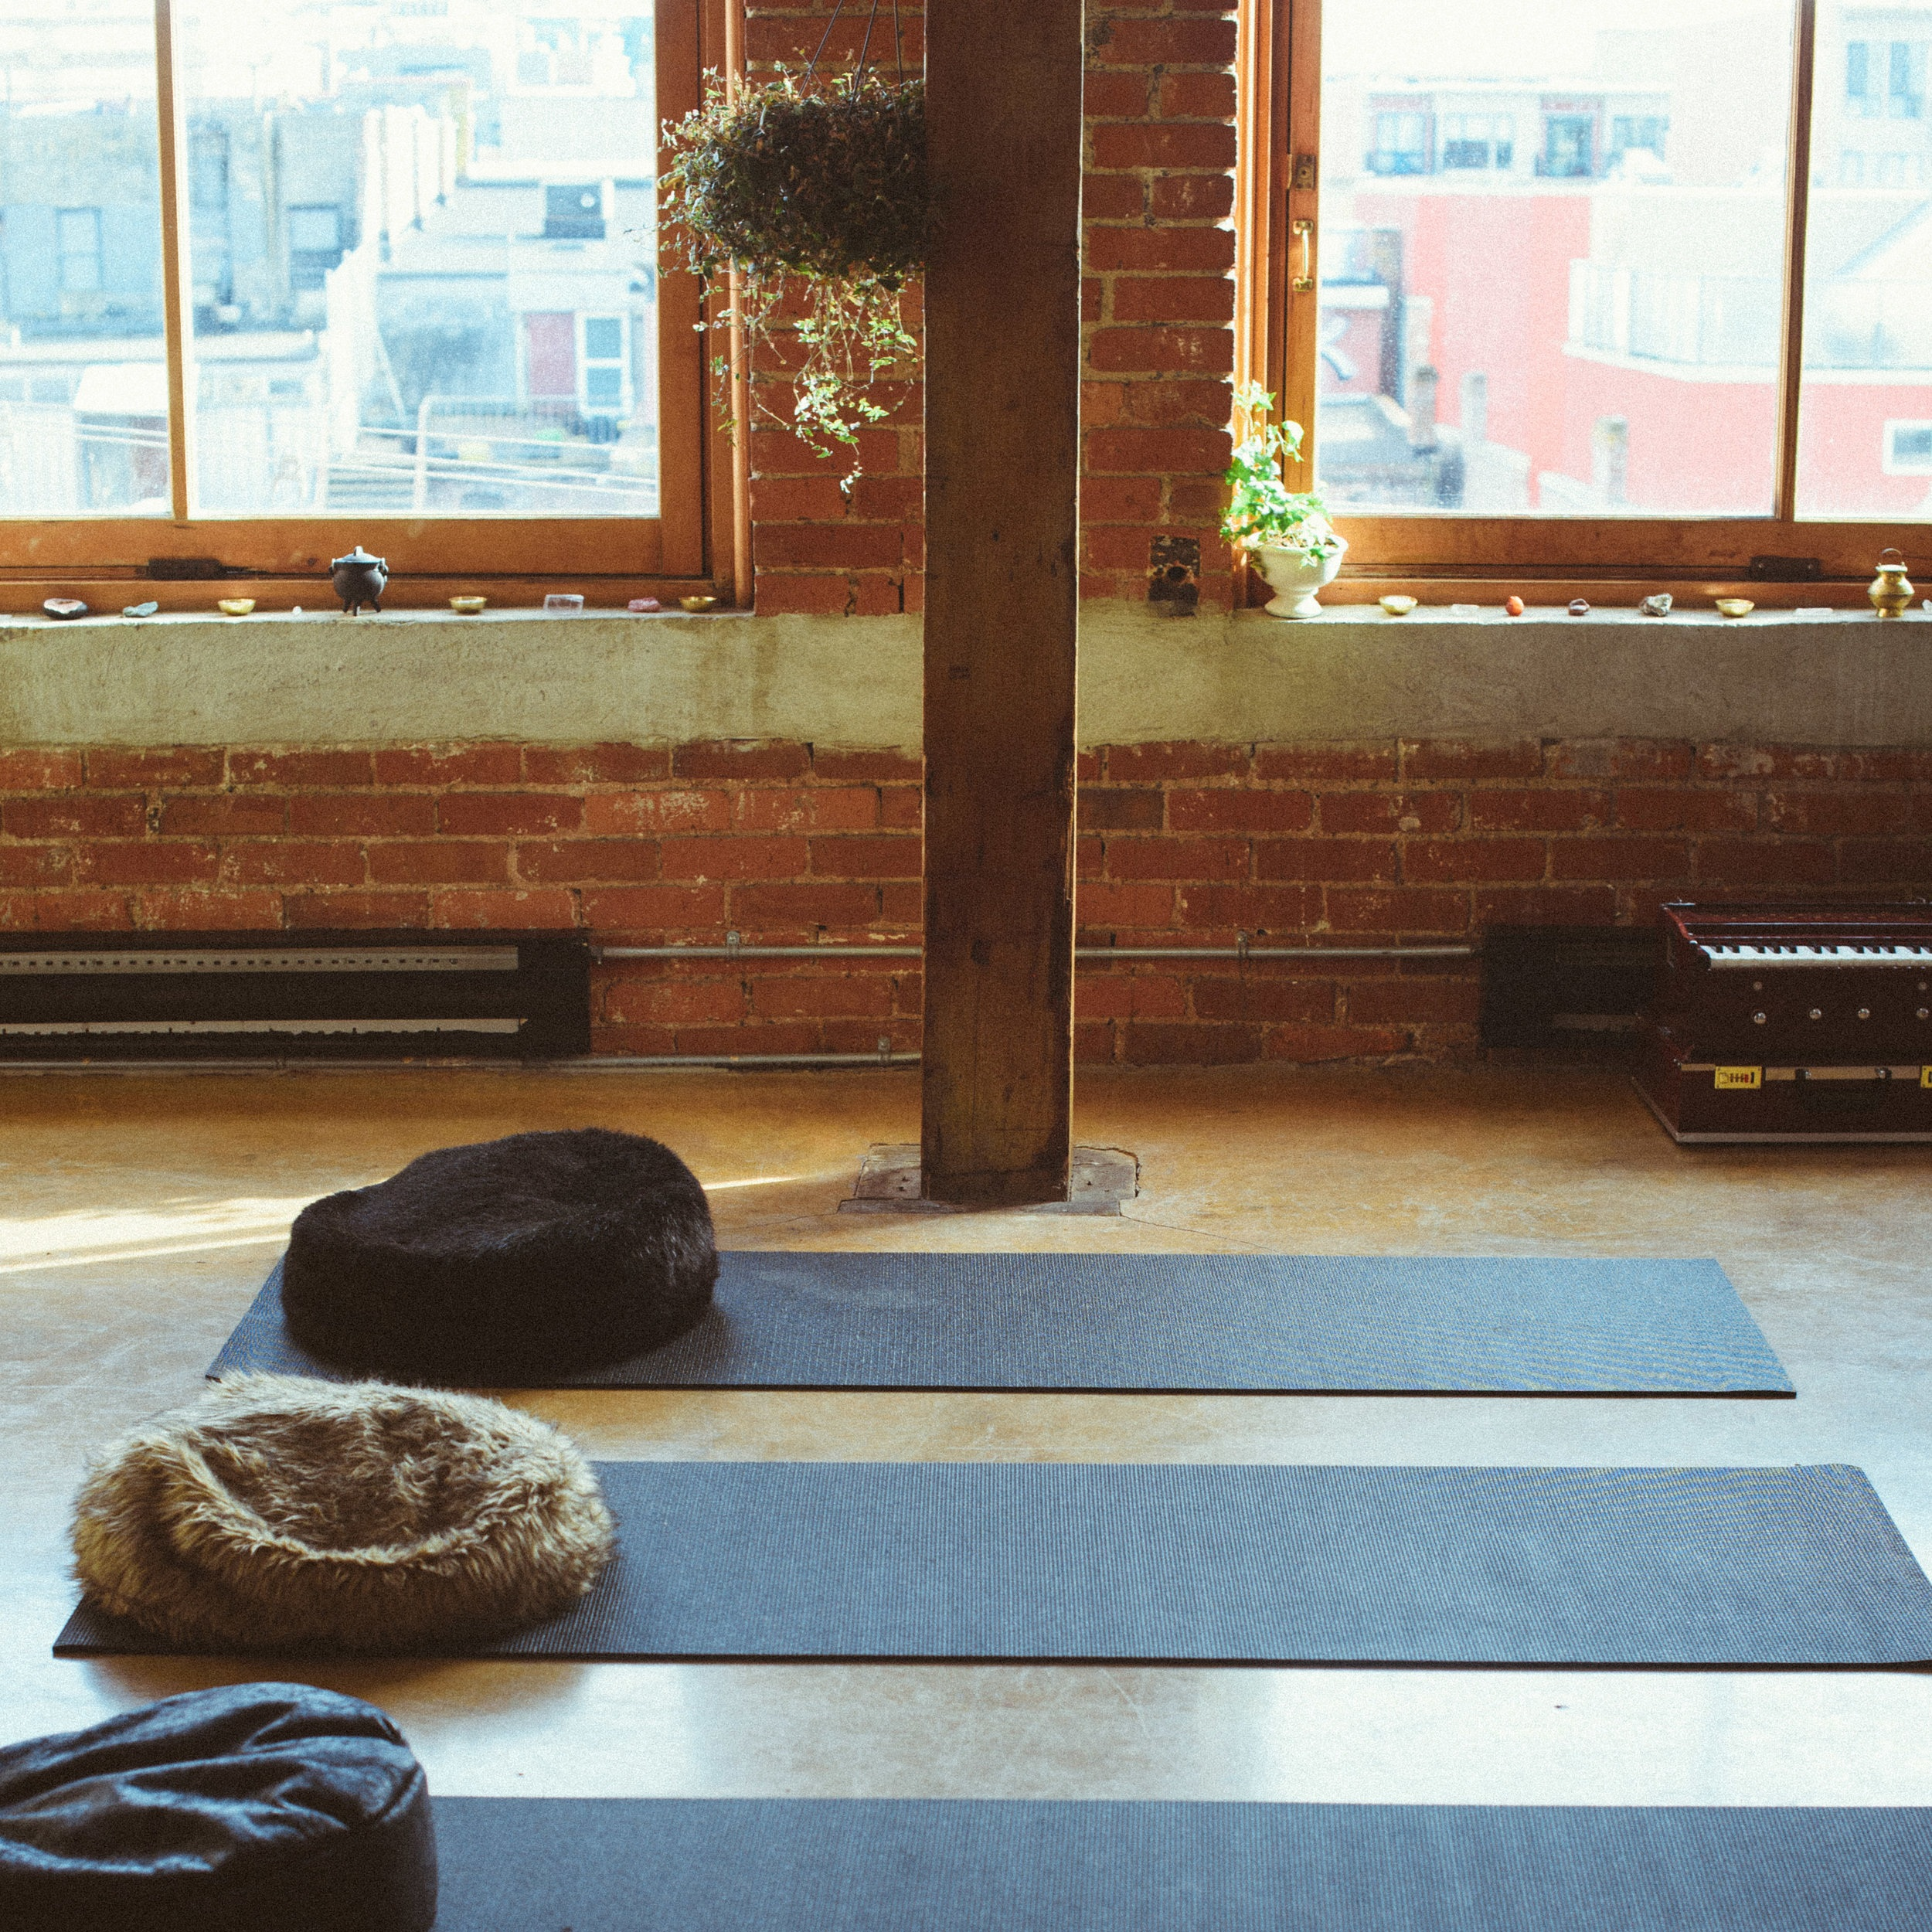 Yoga + Meditation - Our teachers offer their authentic practices and wisdom in yoga, meditation, spirituality and well-being. Our class size is only 7 people. Meaning you will get the semi-private attention you deserve to help cultivate your own personal sadhana (practice).